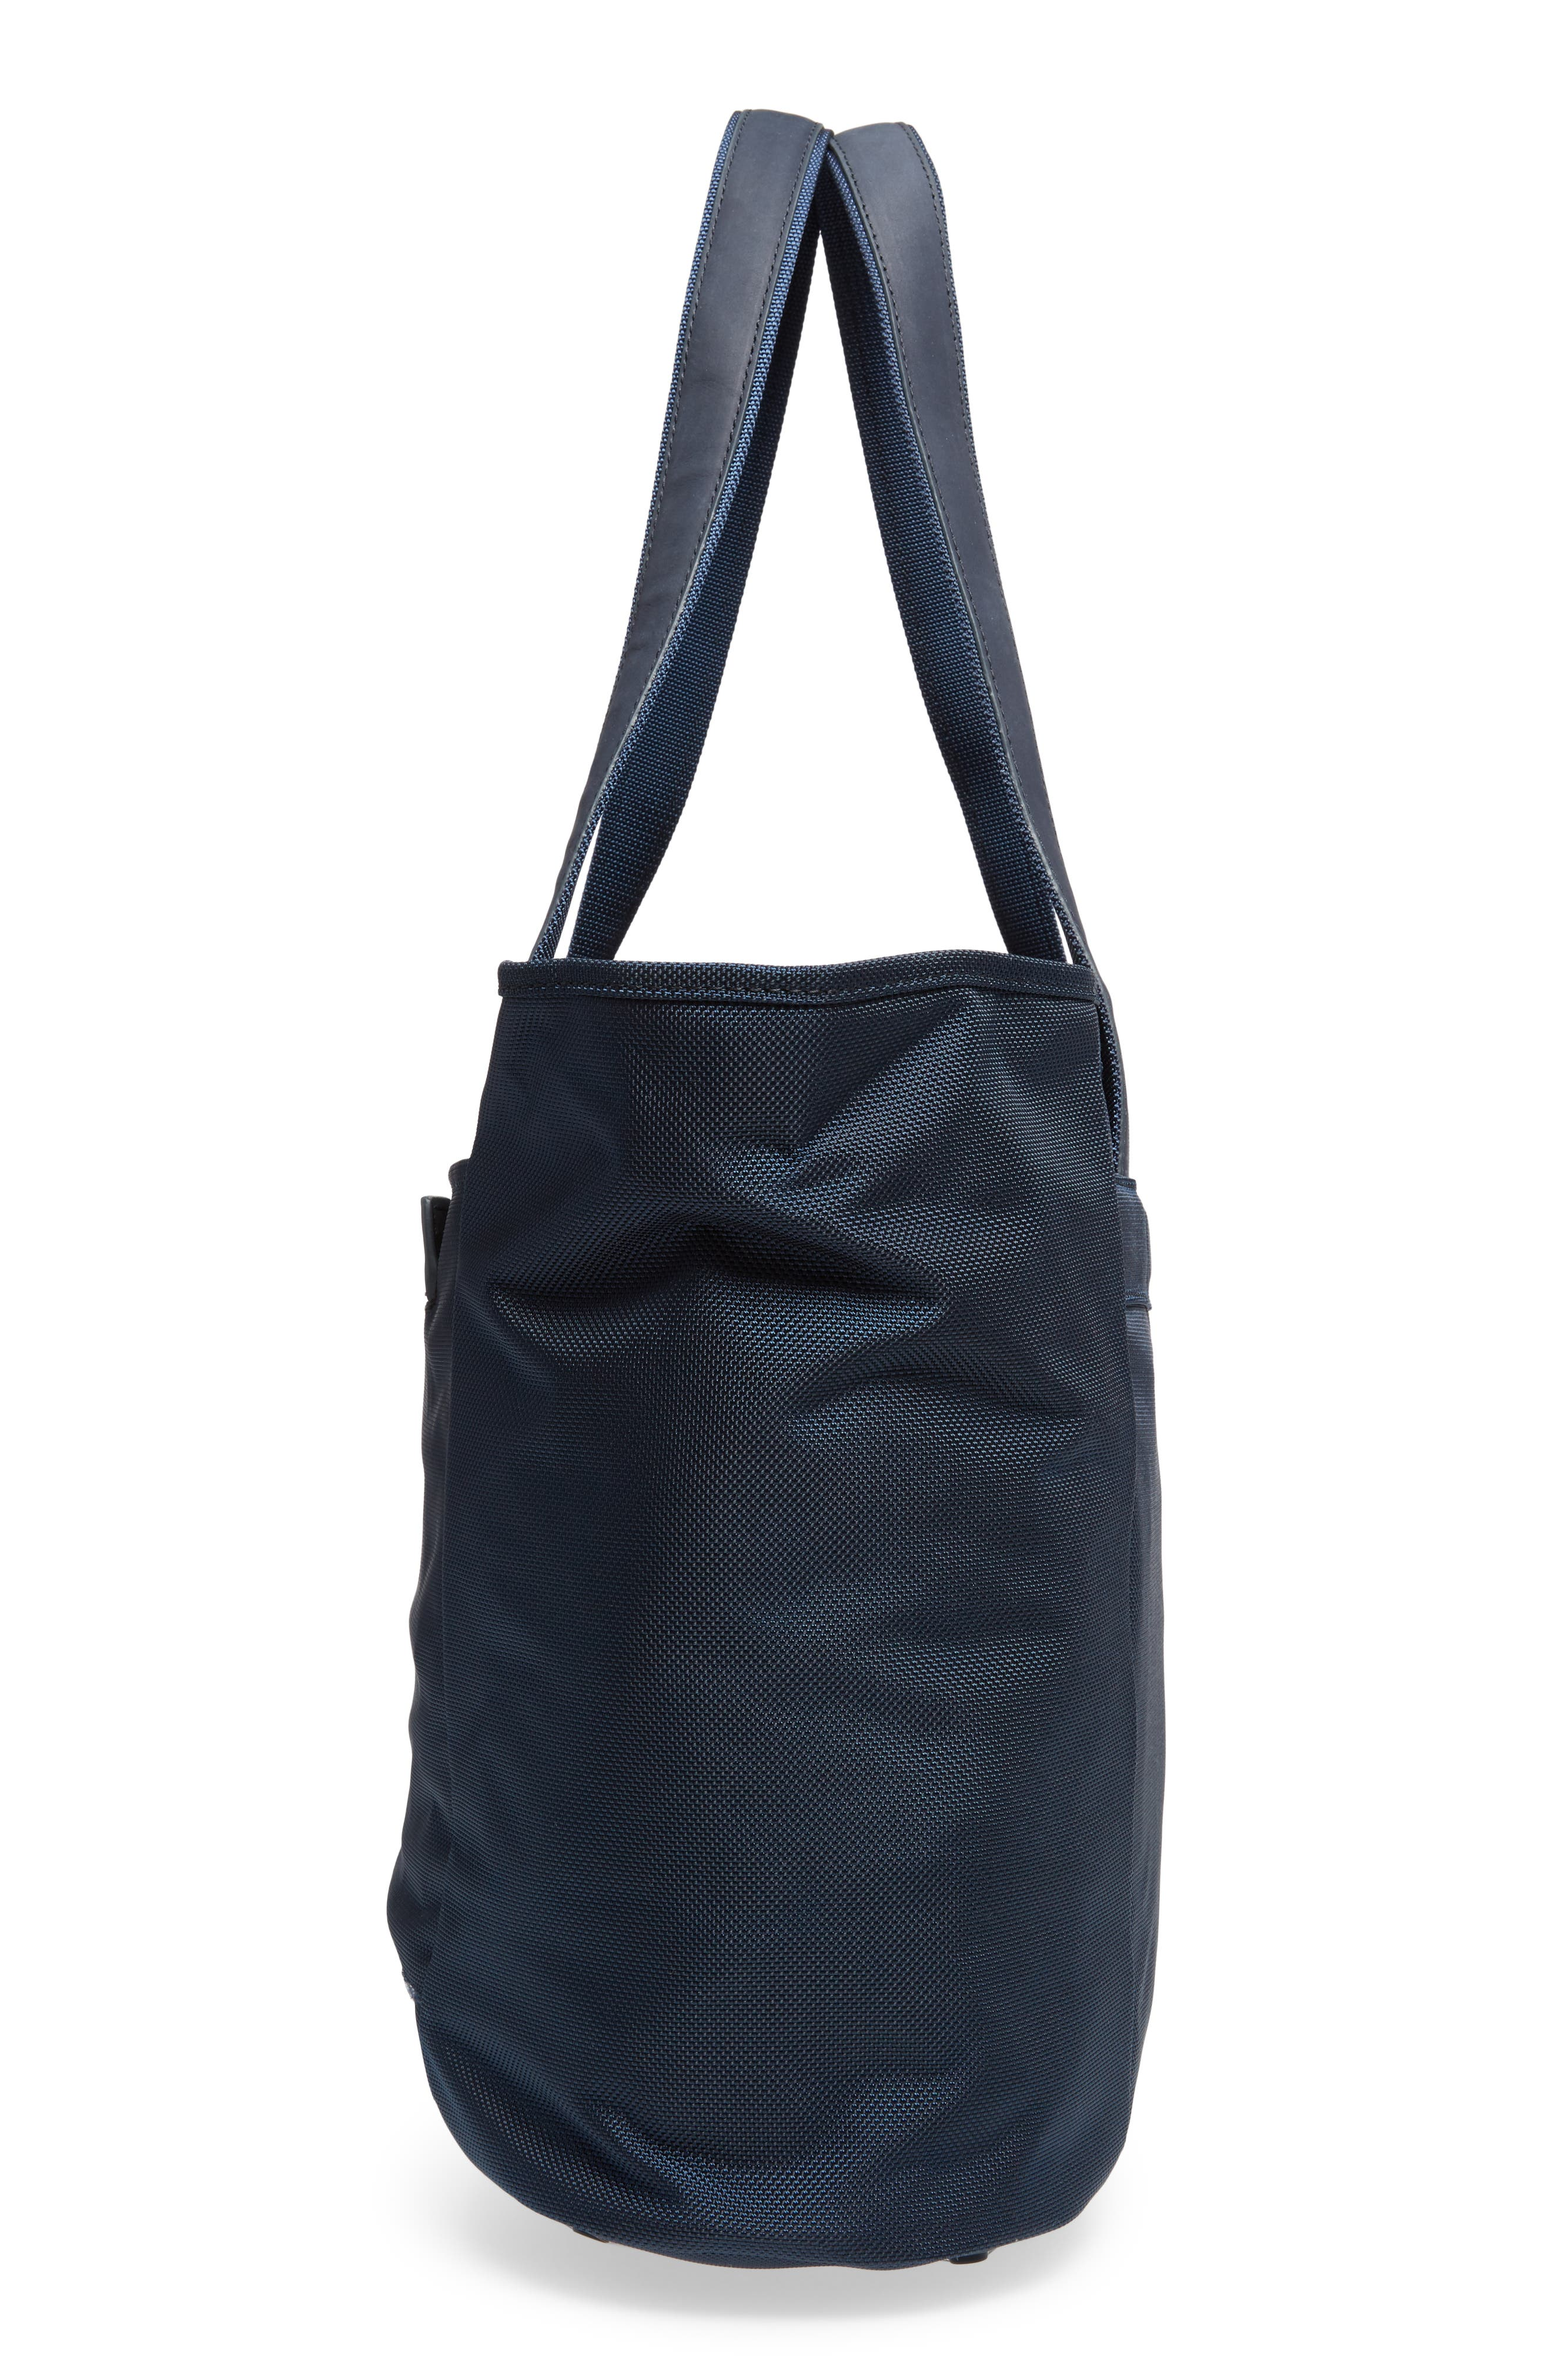 Ltd. Edition Tote Bag,                             Alternate thumbnail 5, color,                             NAVY